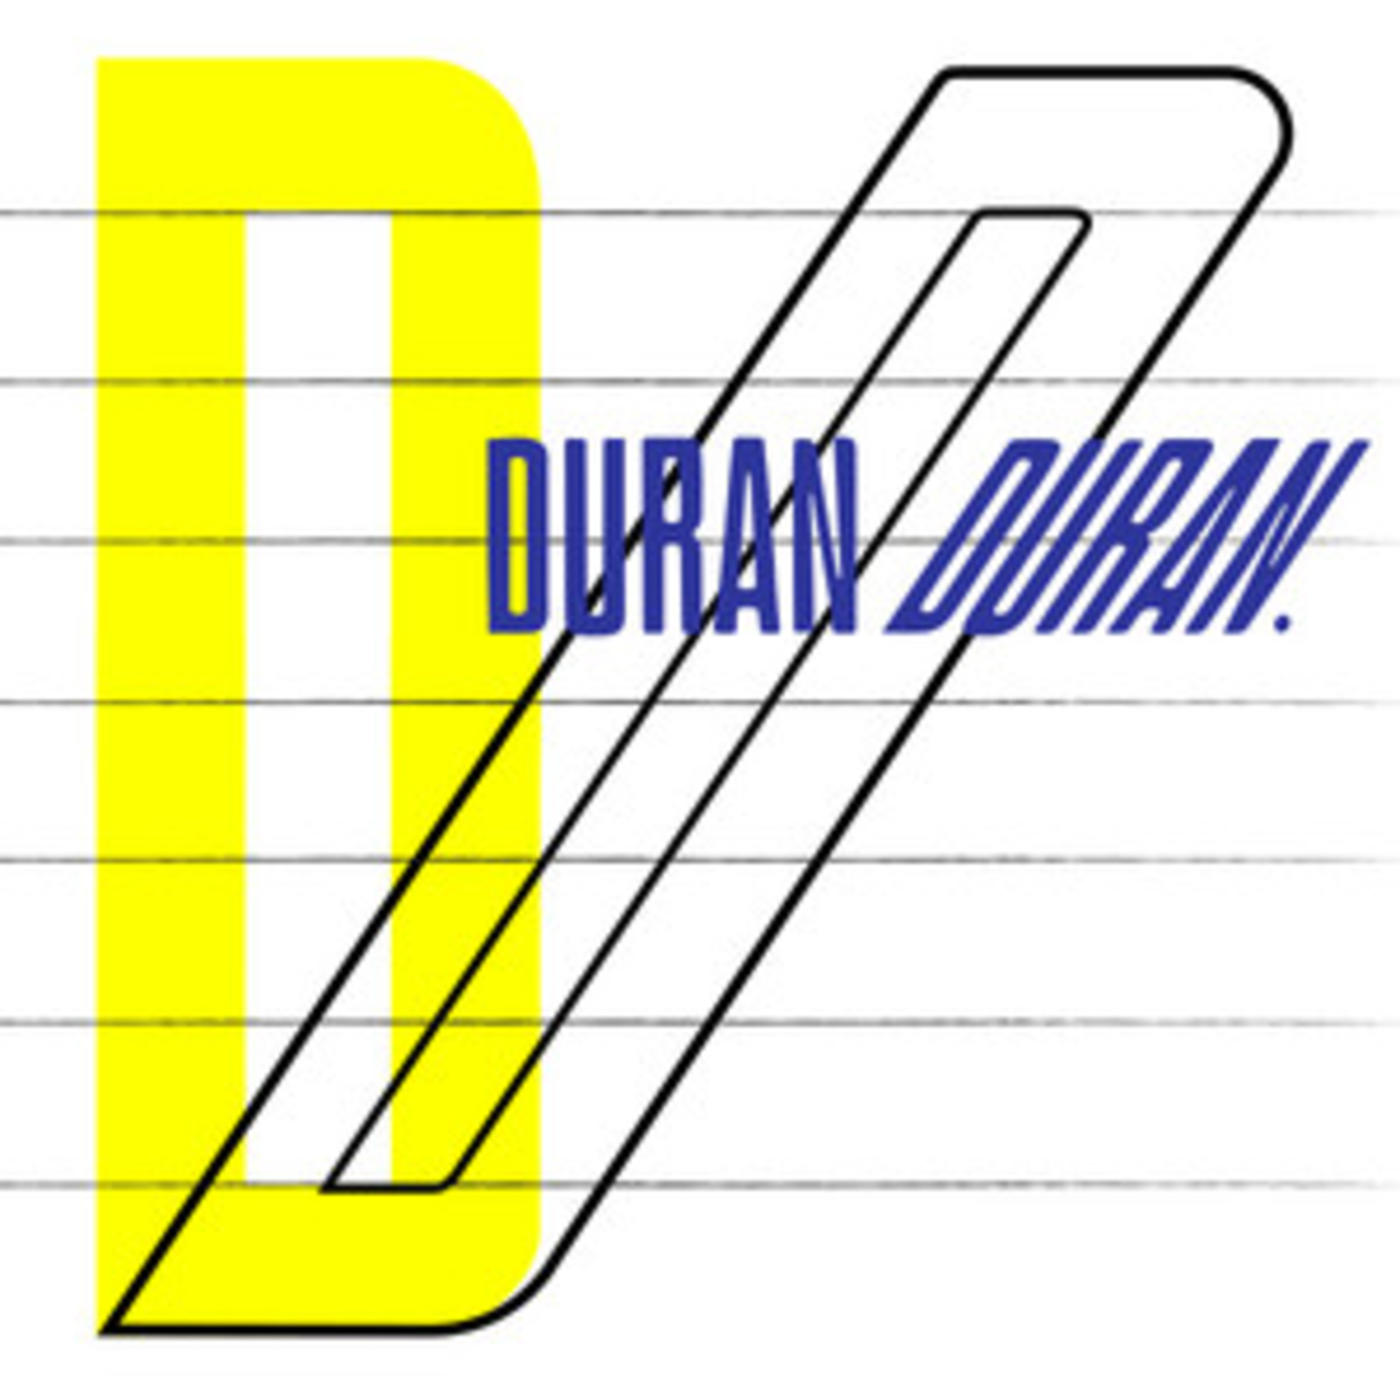 Official Duran Duran Playlist - Hungry Like the Wolf, Rio, Planet Earth, Ordinary World, Come Undone